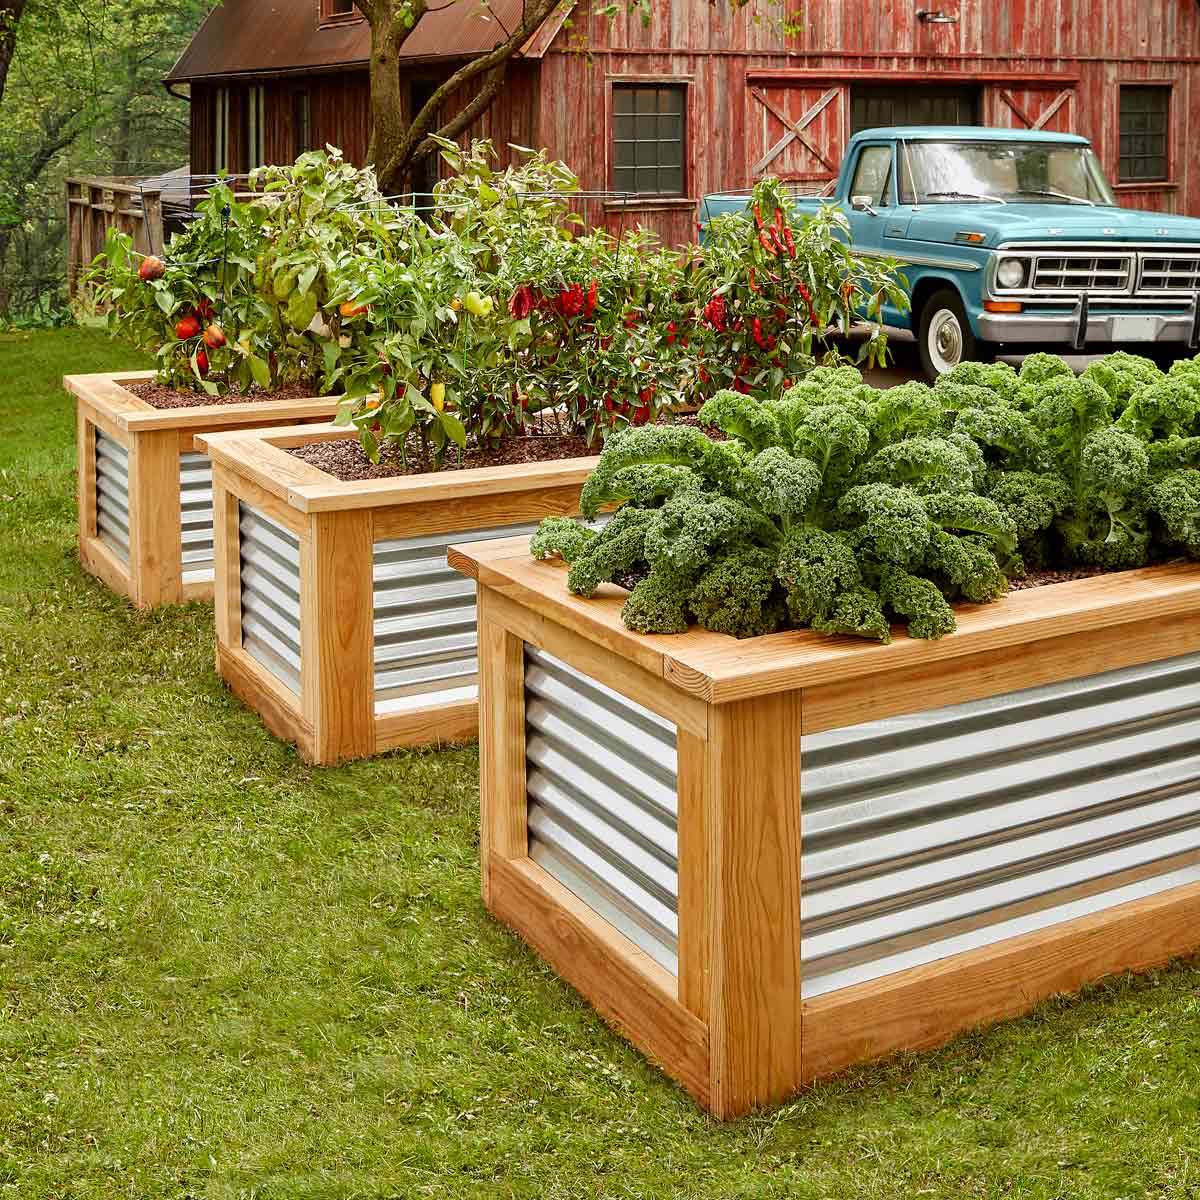 25+ DIY Raised Garden Bed Plans That Are Simple And Cheap